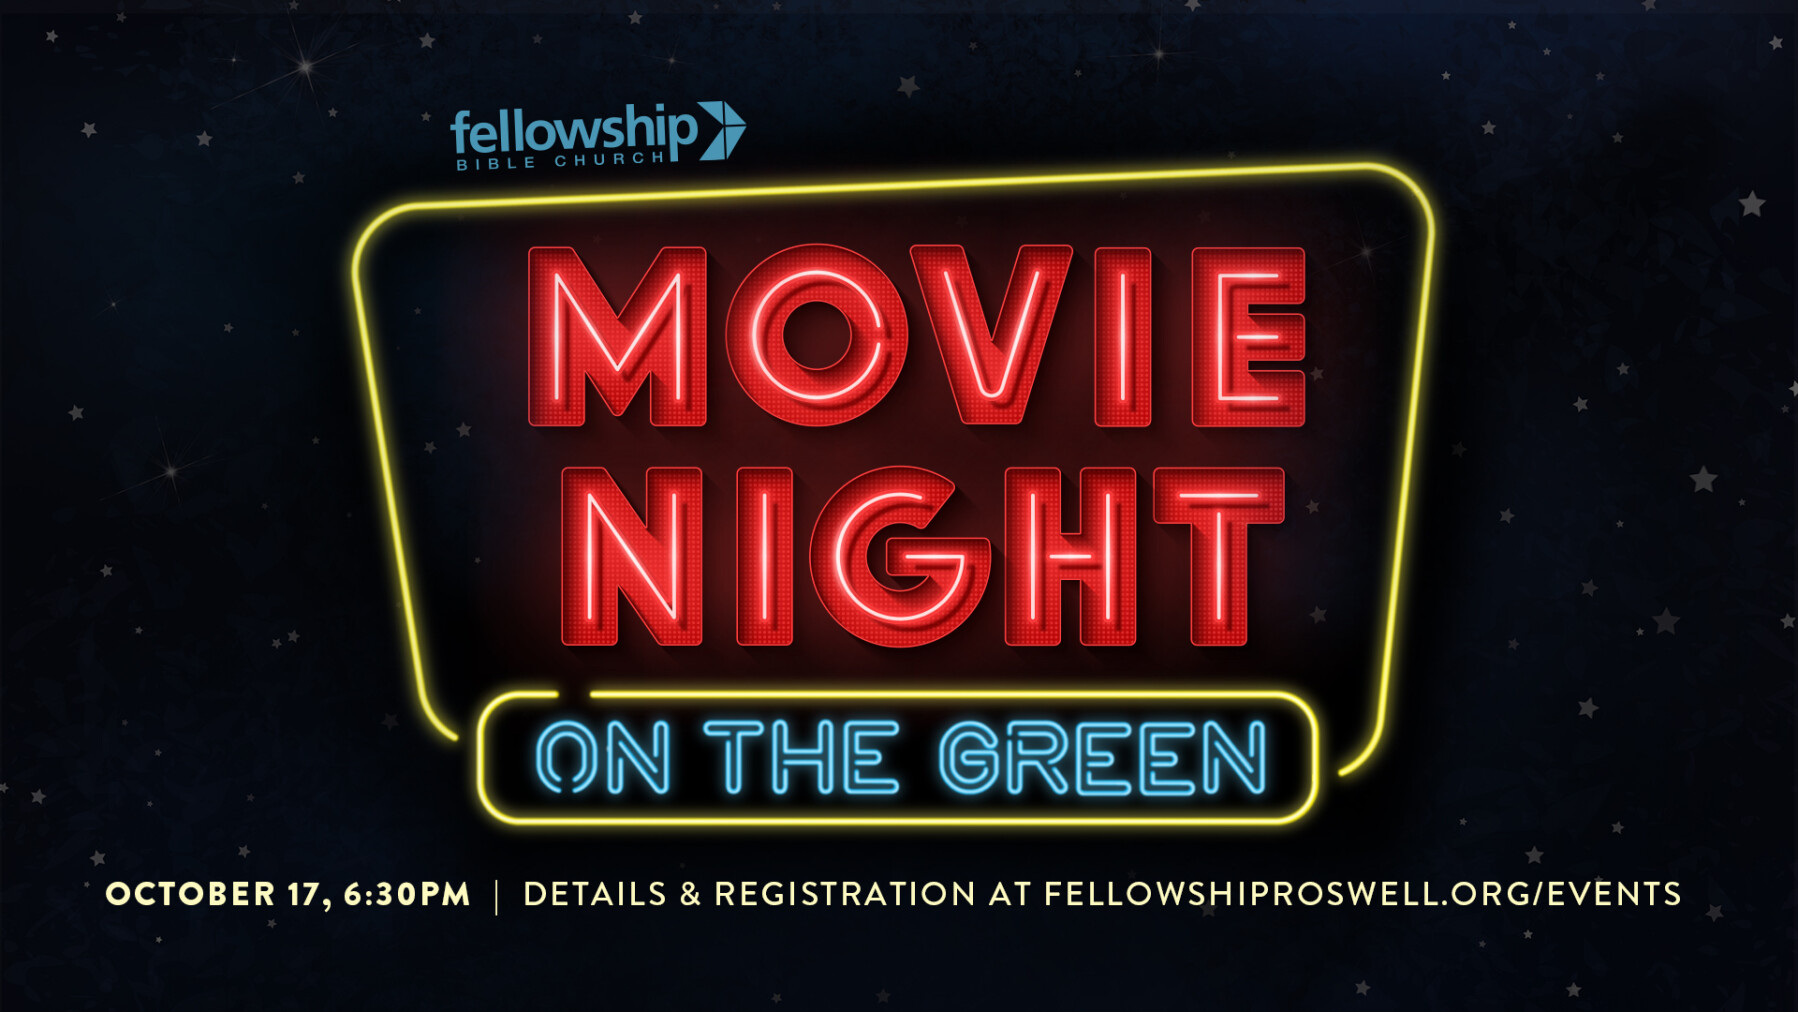 Movie Night on the Green